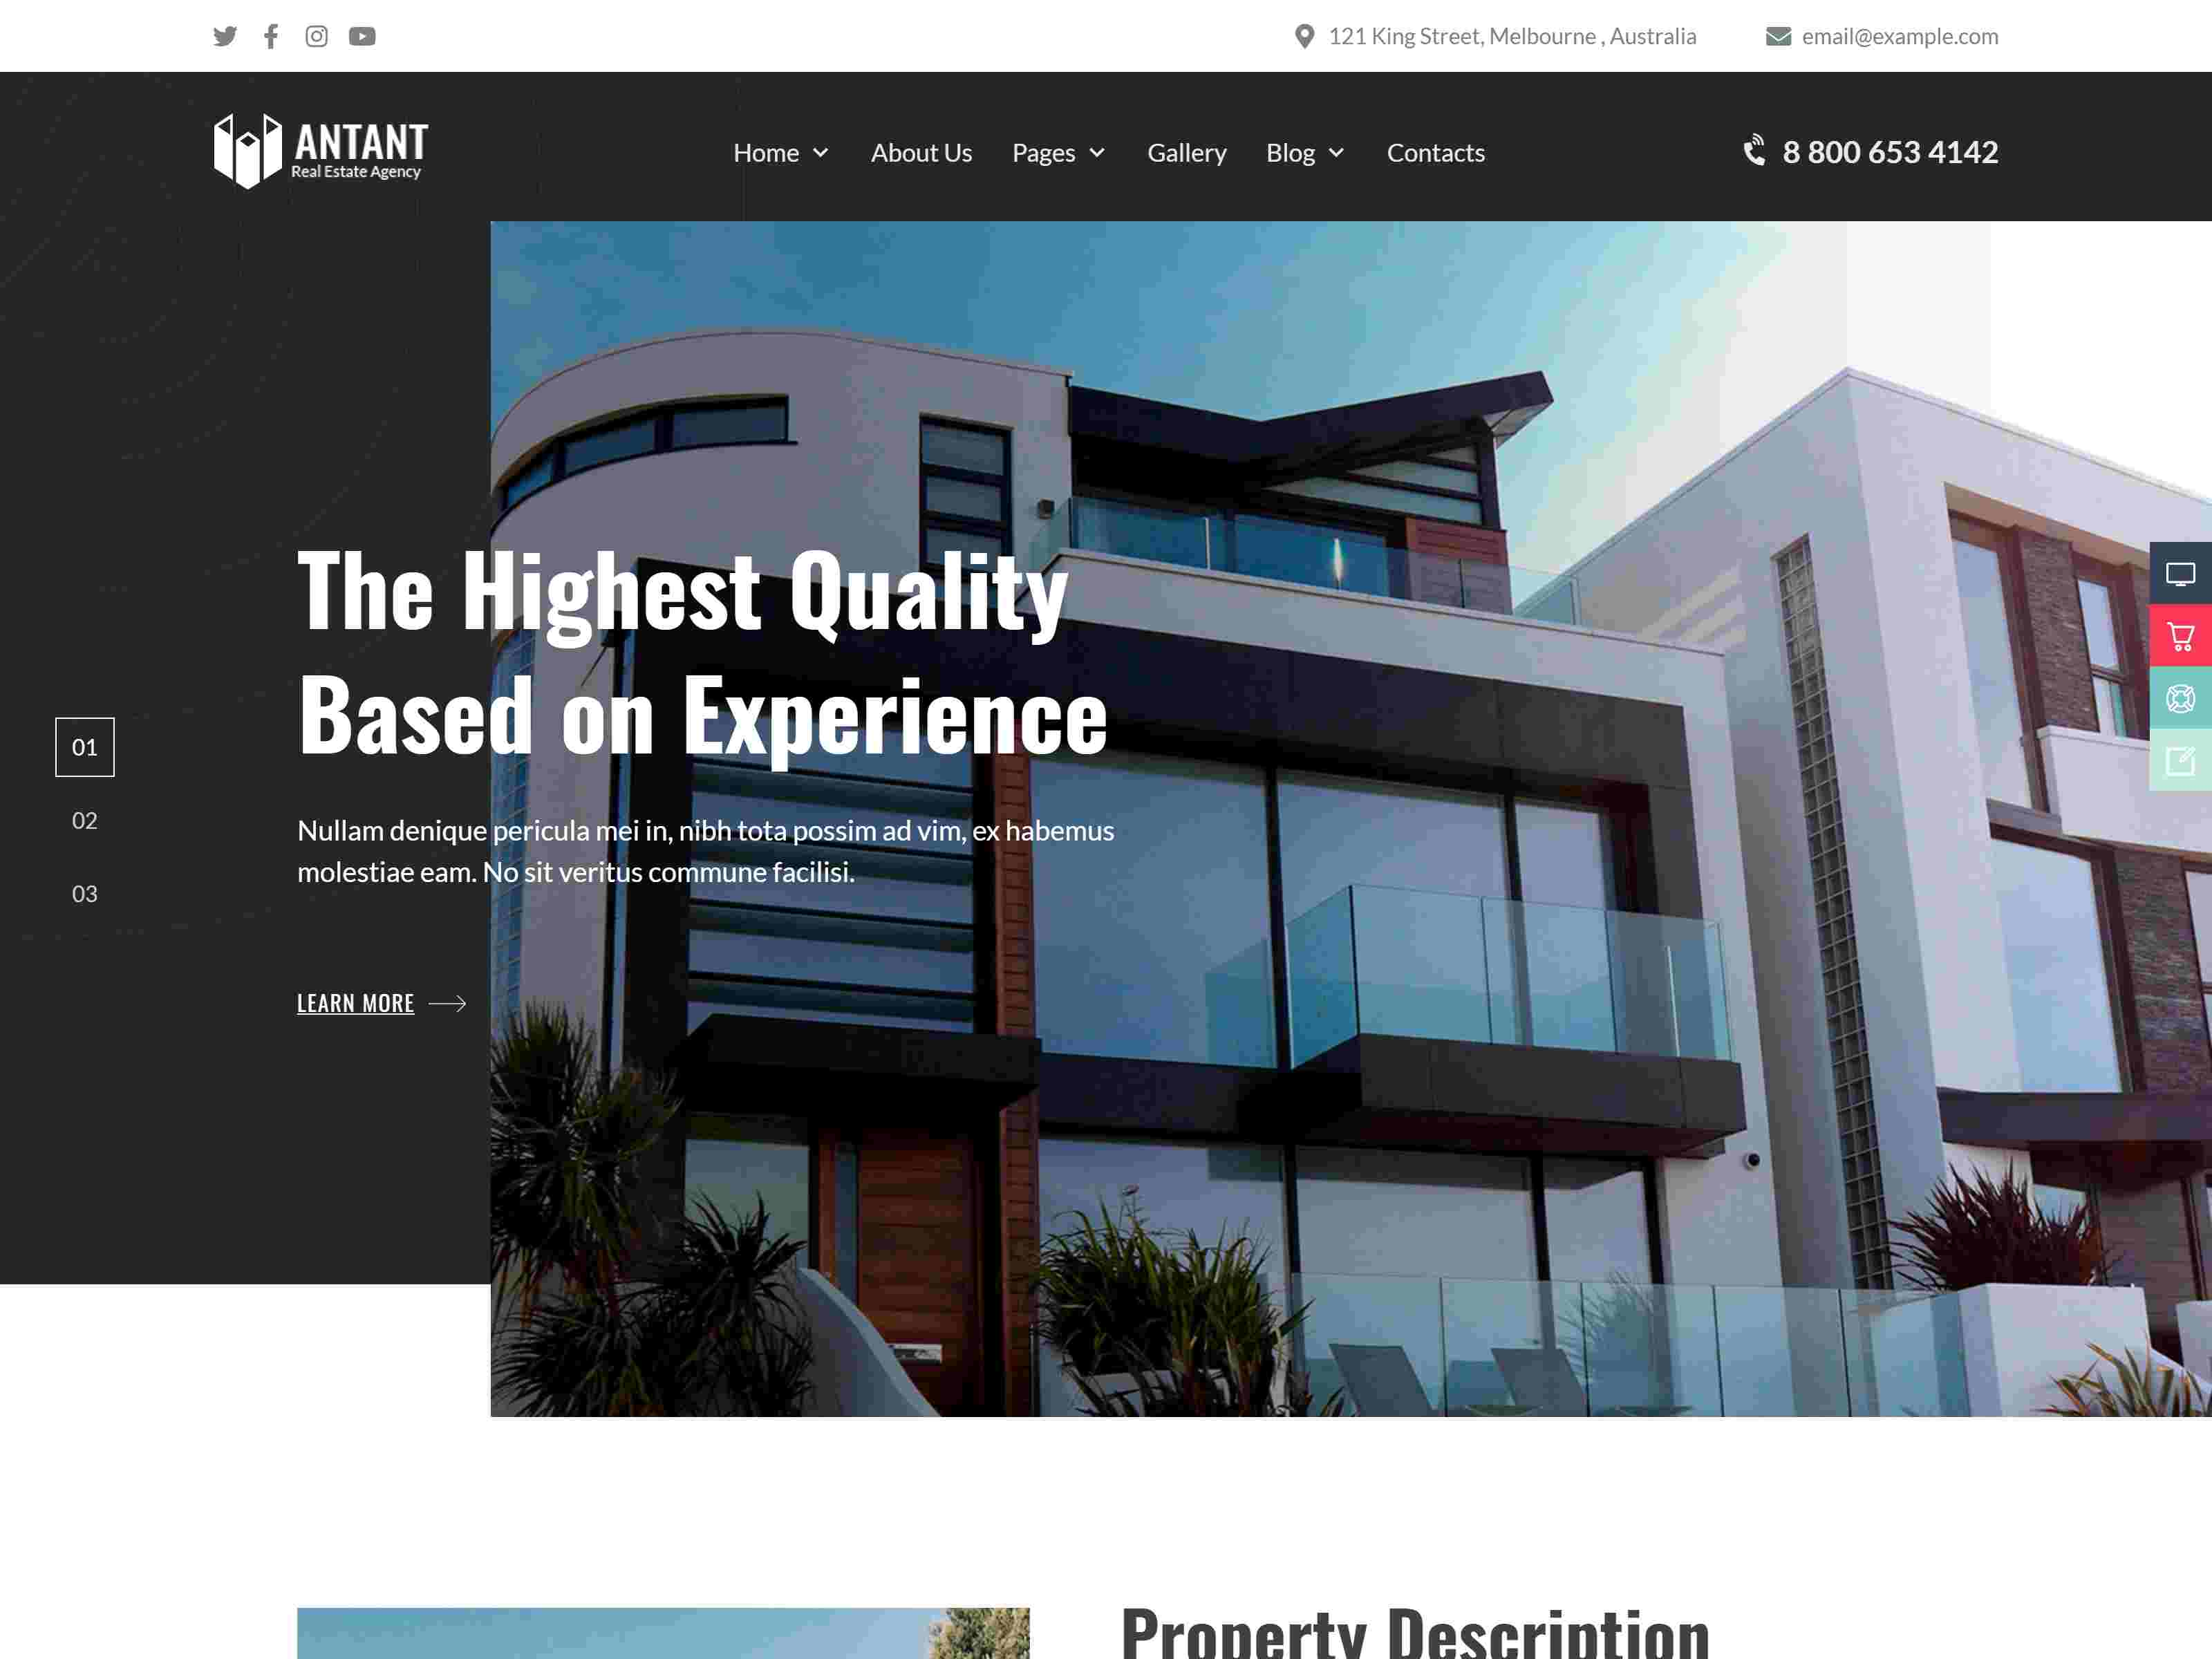 Antant - Single Property & Real Estate